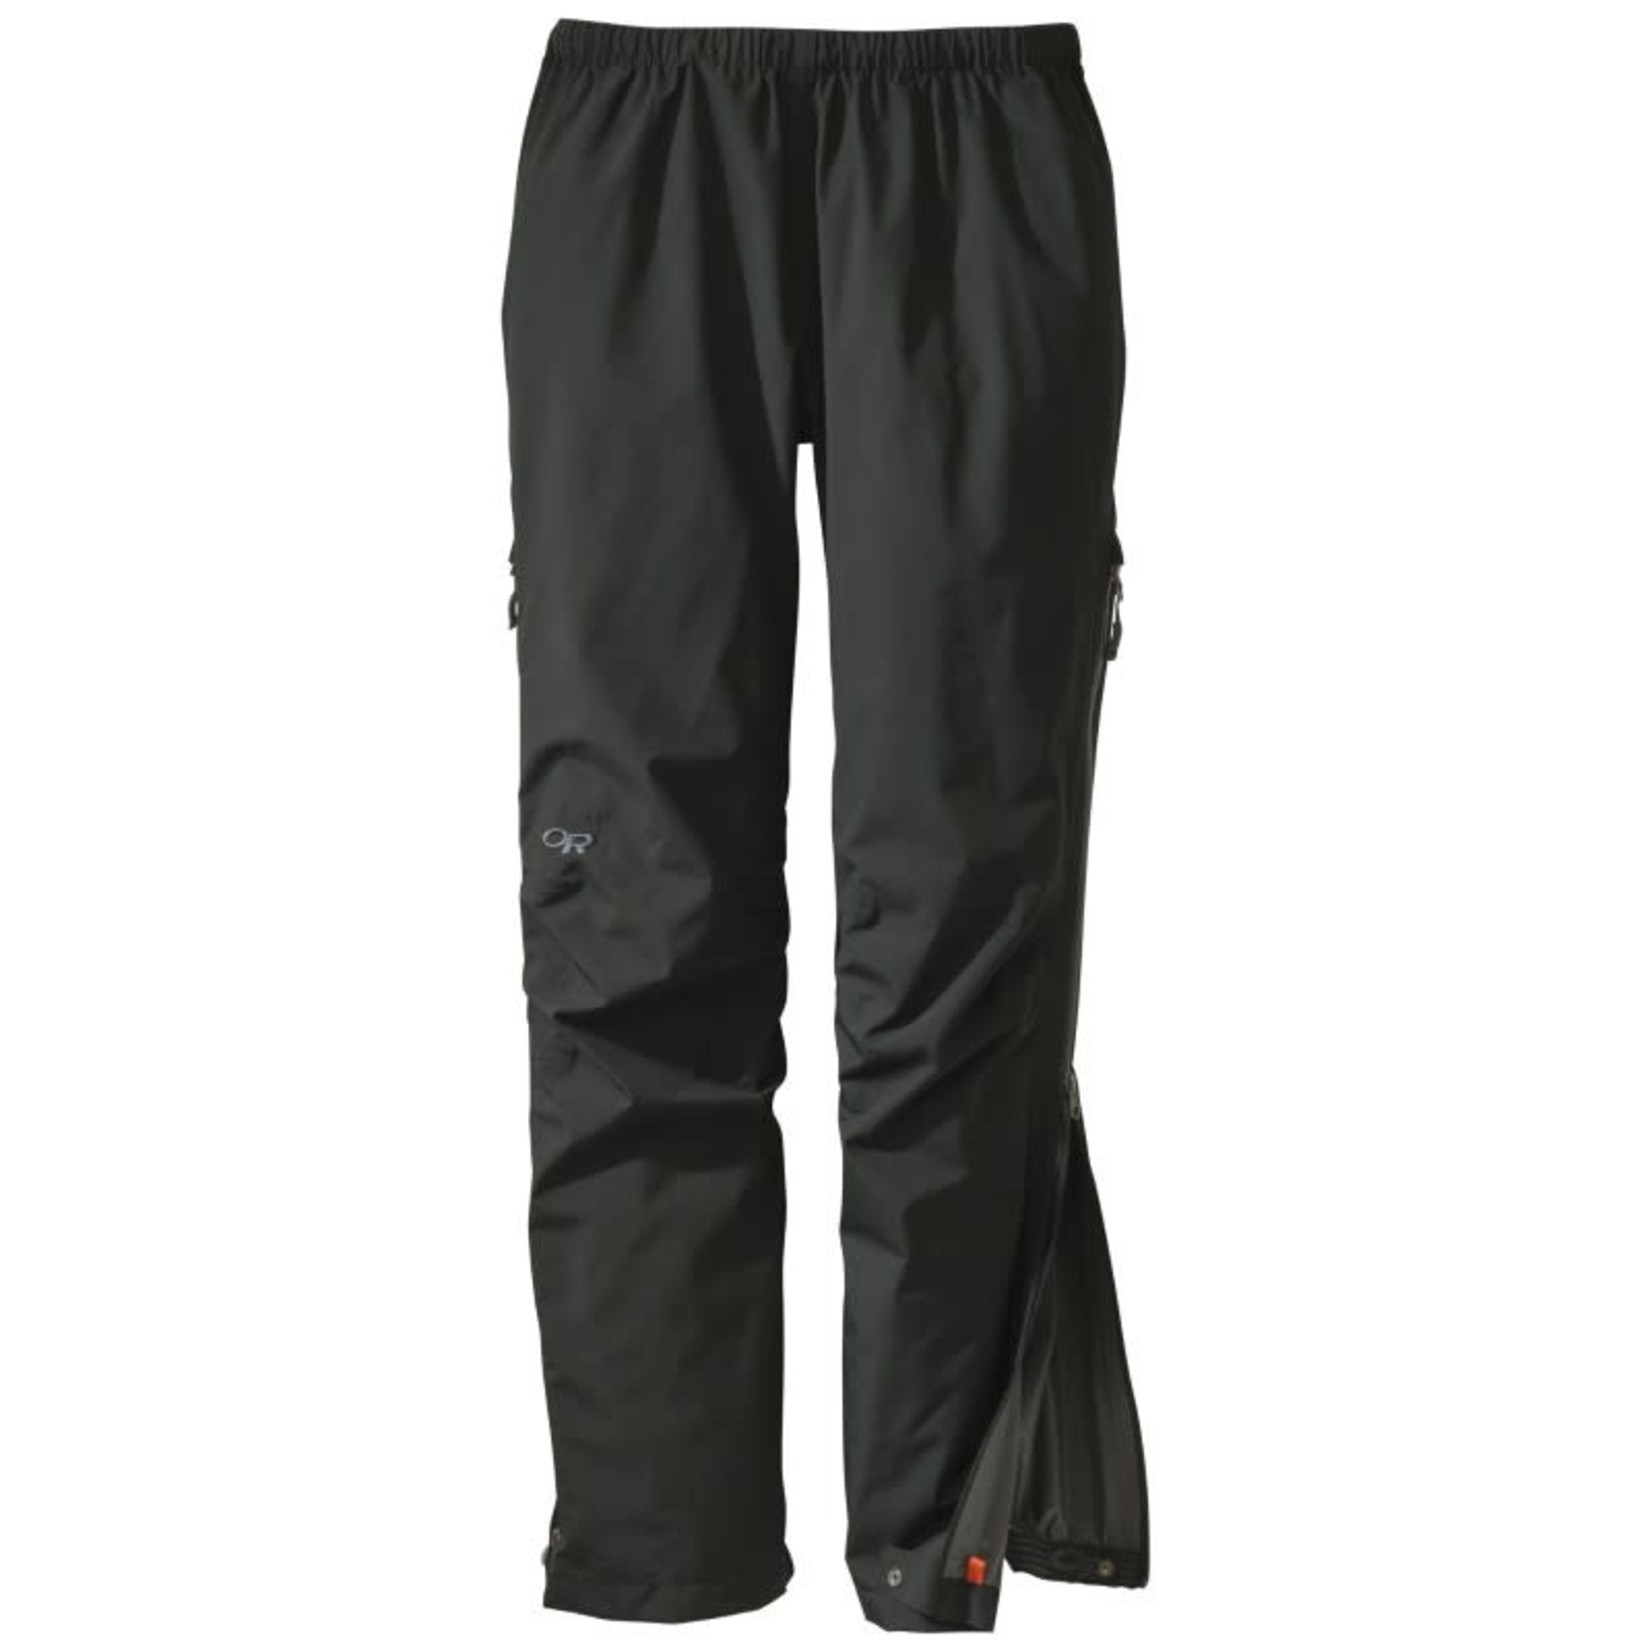 Outdoor Research Outdoor Research Aspire Pant - Women